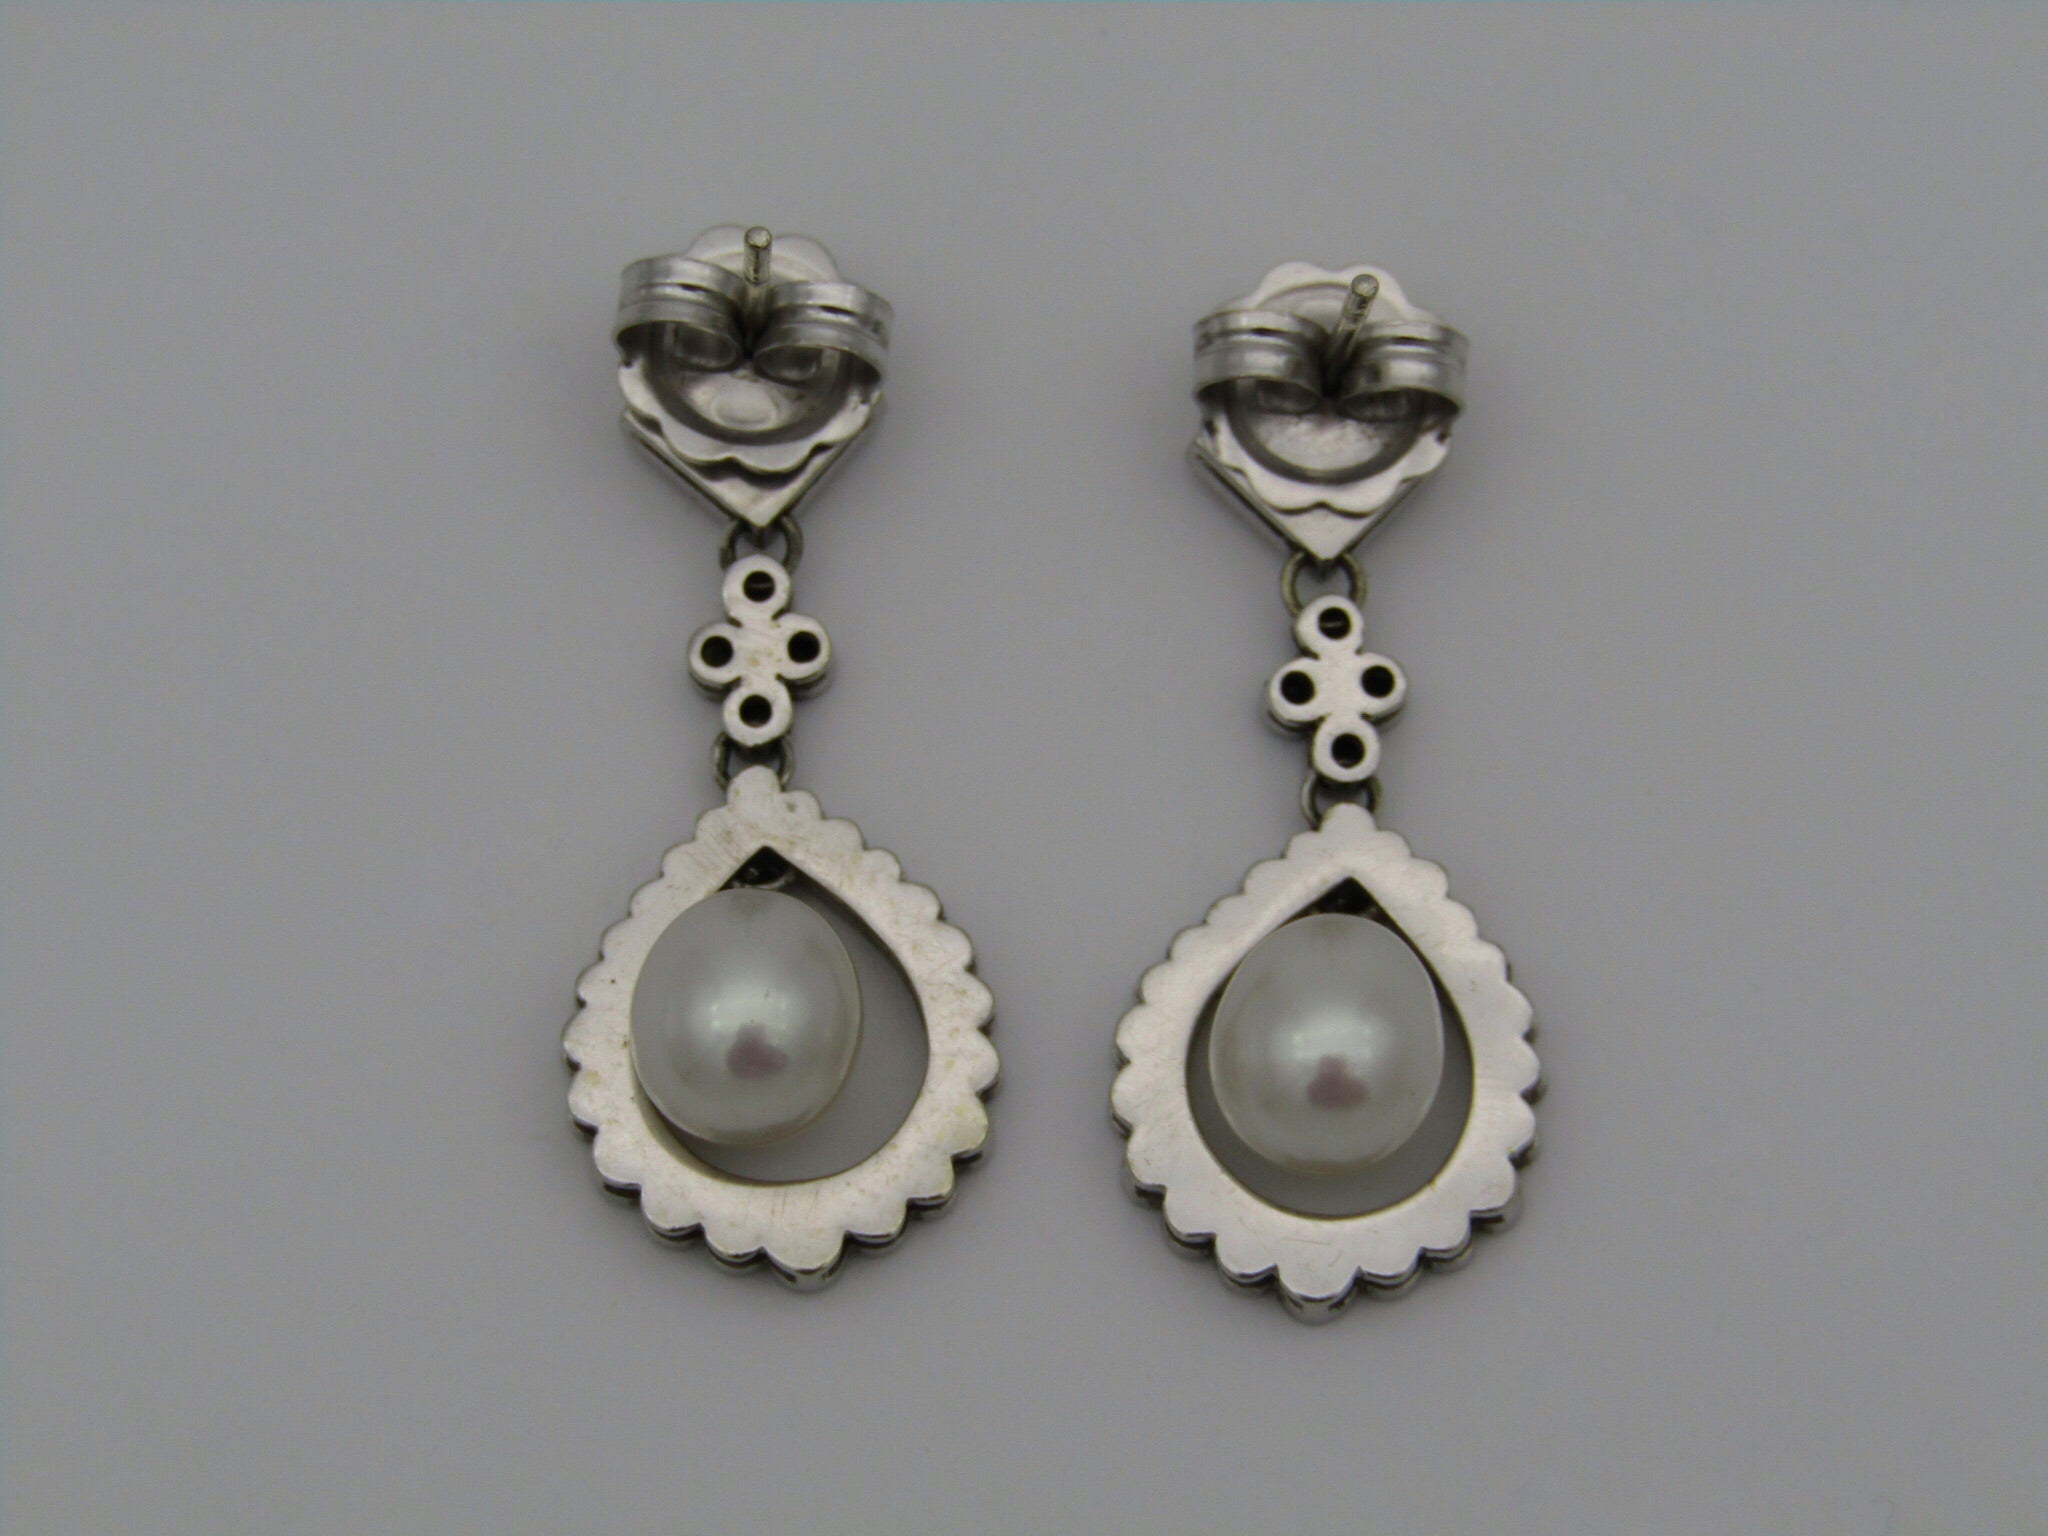 A pair of 9kt gold pearl and diamond earrings.